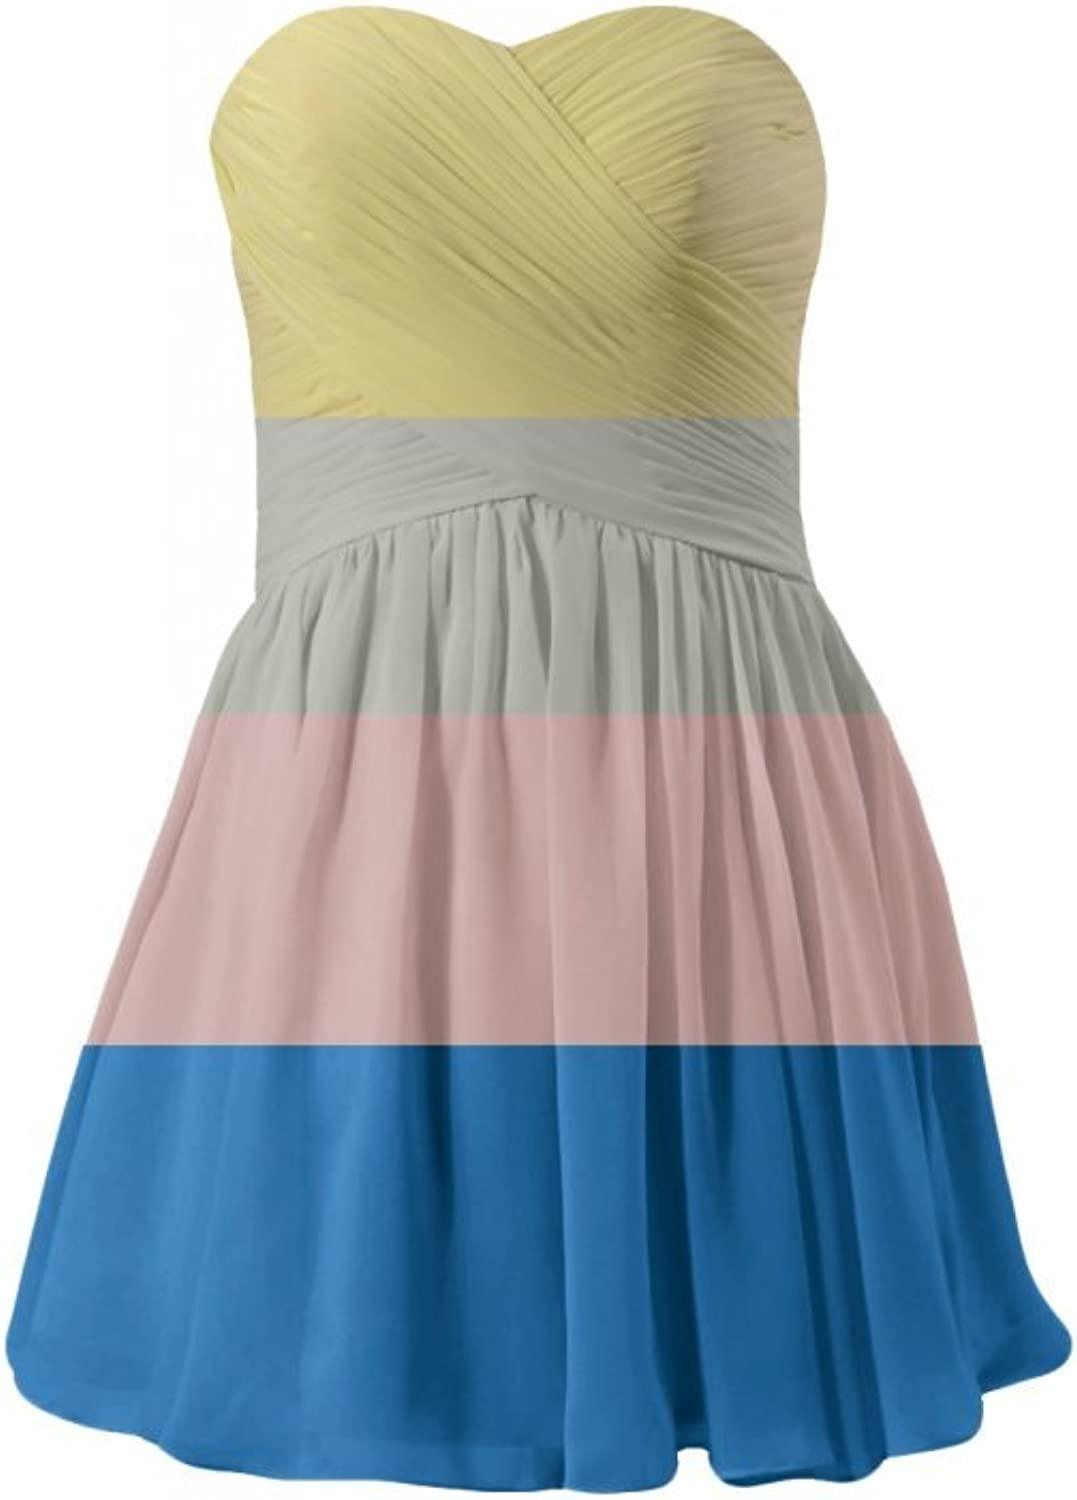 DaisyFormals reg; Strapless Prom Dress Mini Party Dress Cocktail Dress(BM800N)